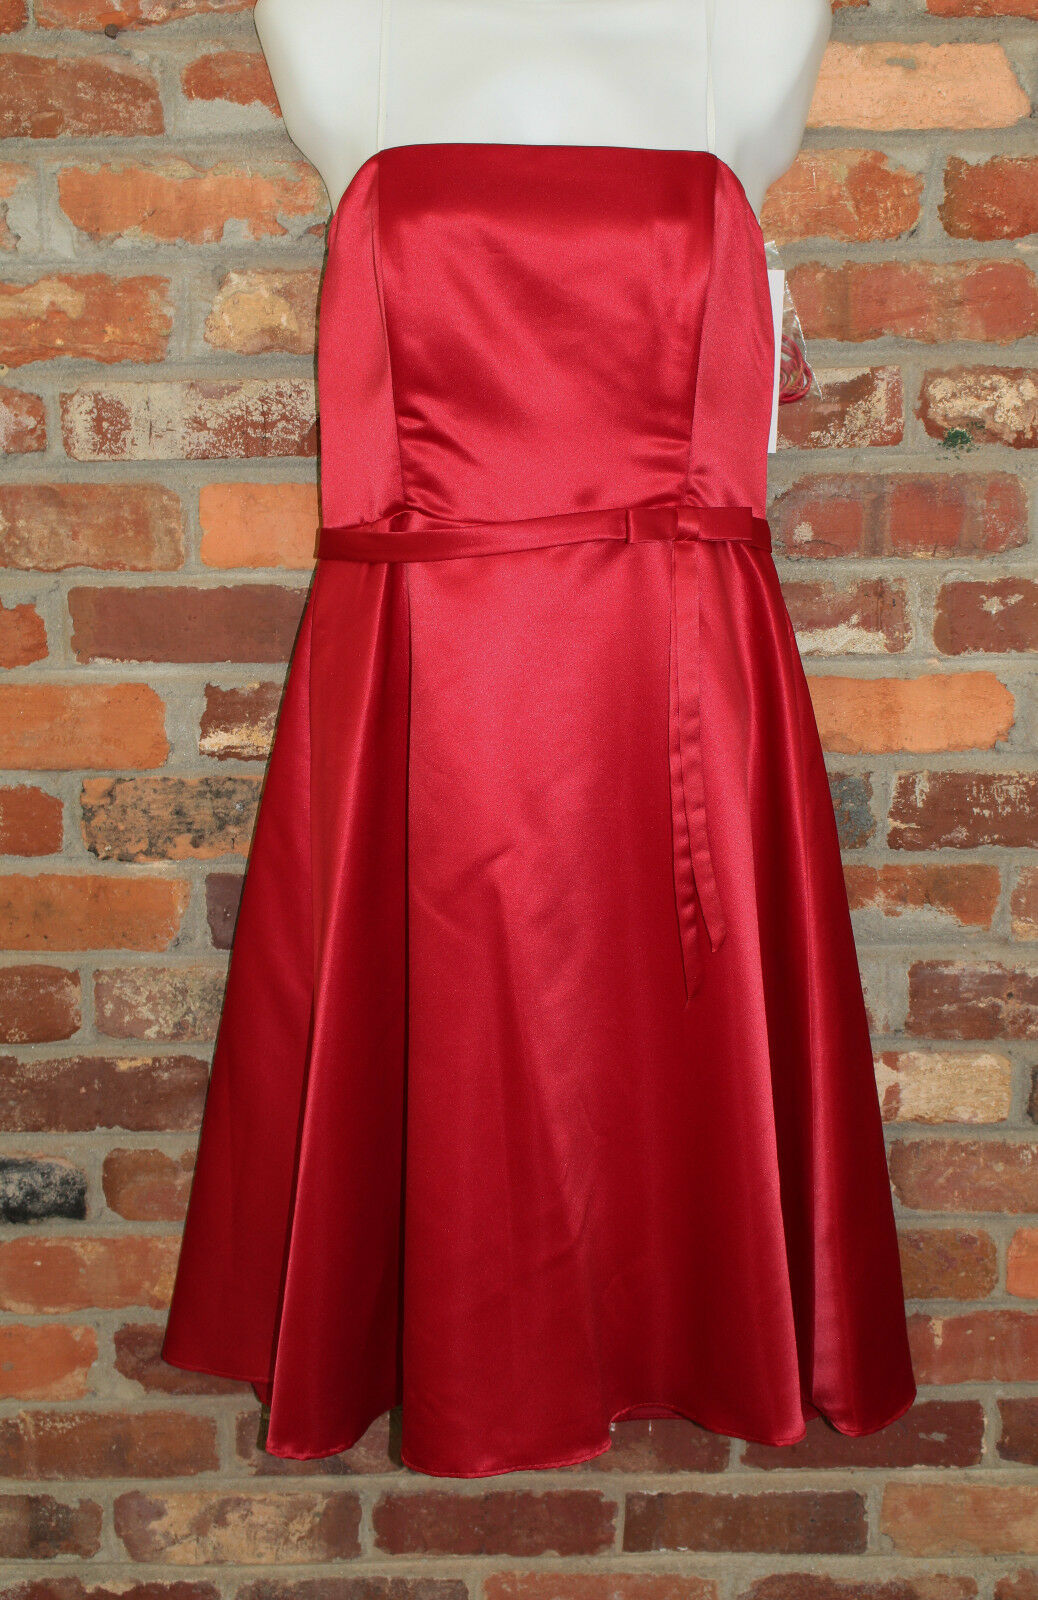 Fiesta Red Strapless Knee Length Prom Bridesmaid Formal Dress USA  Large Womens